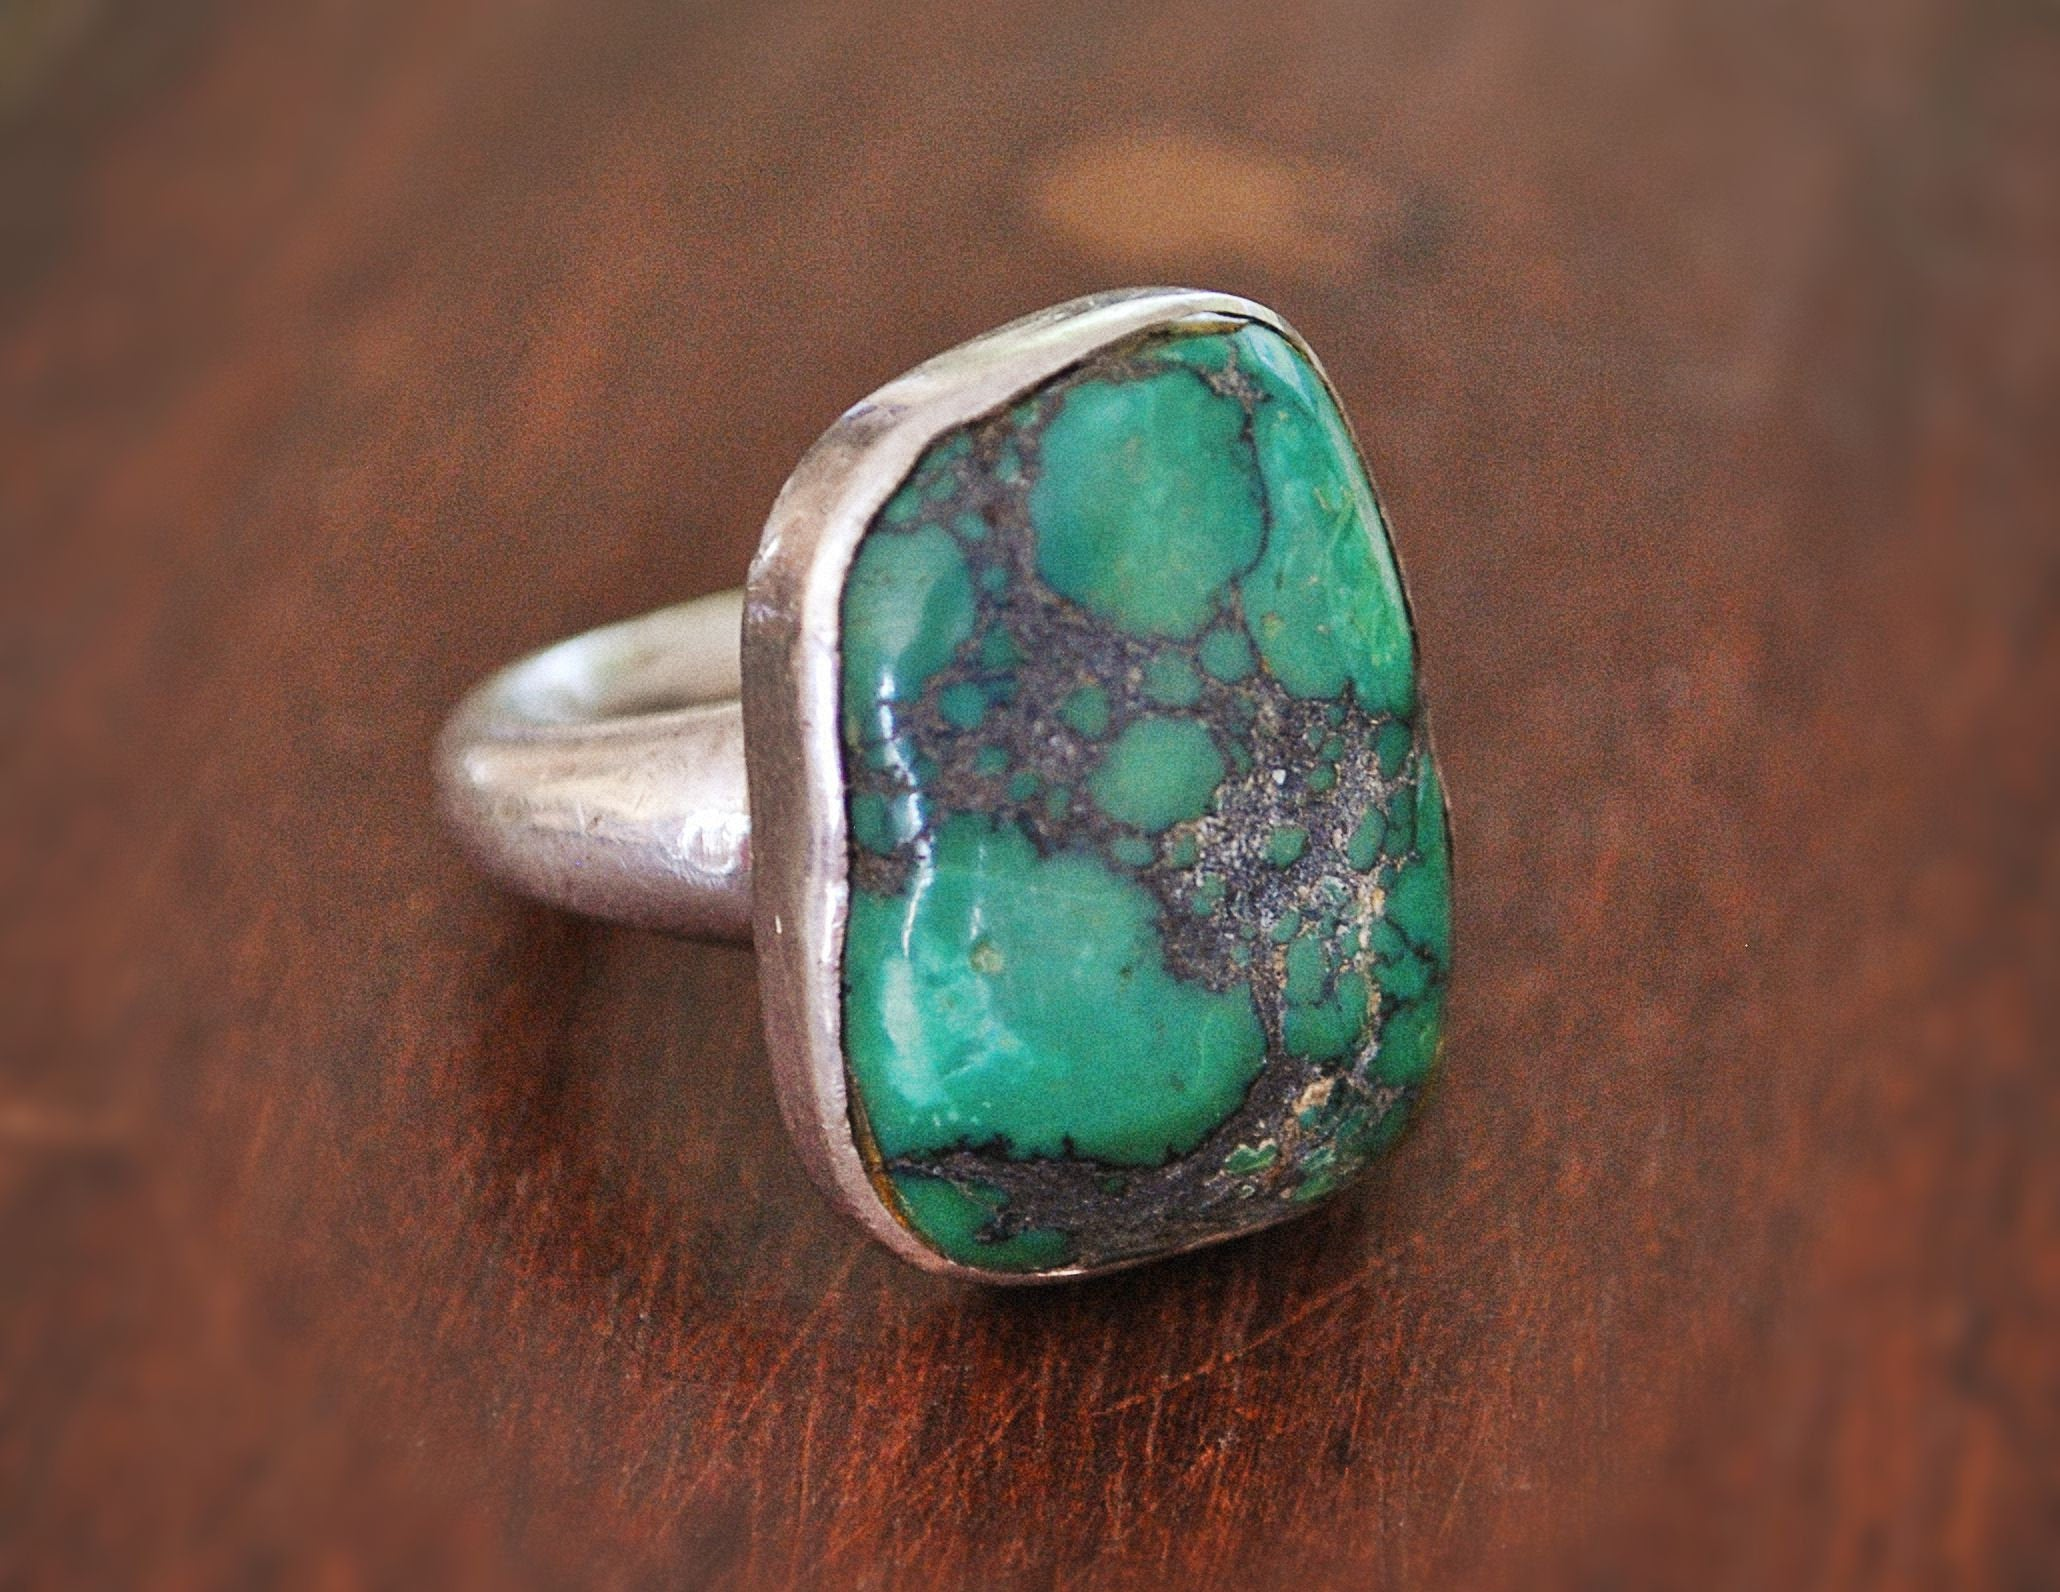 Turquoise Nugget Ring - Size 7.5 - Turquoise Ring - Indian Turquoise Ring - Turquoise Nugget Ring